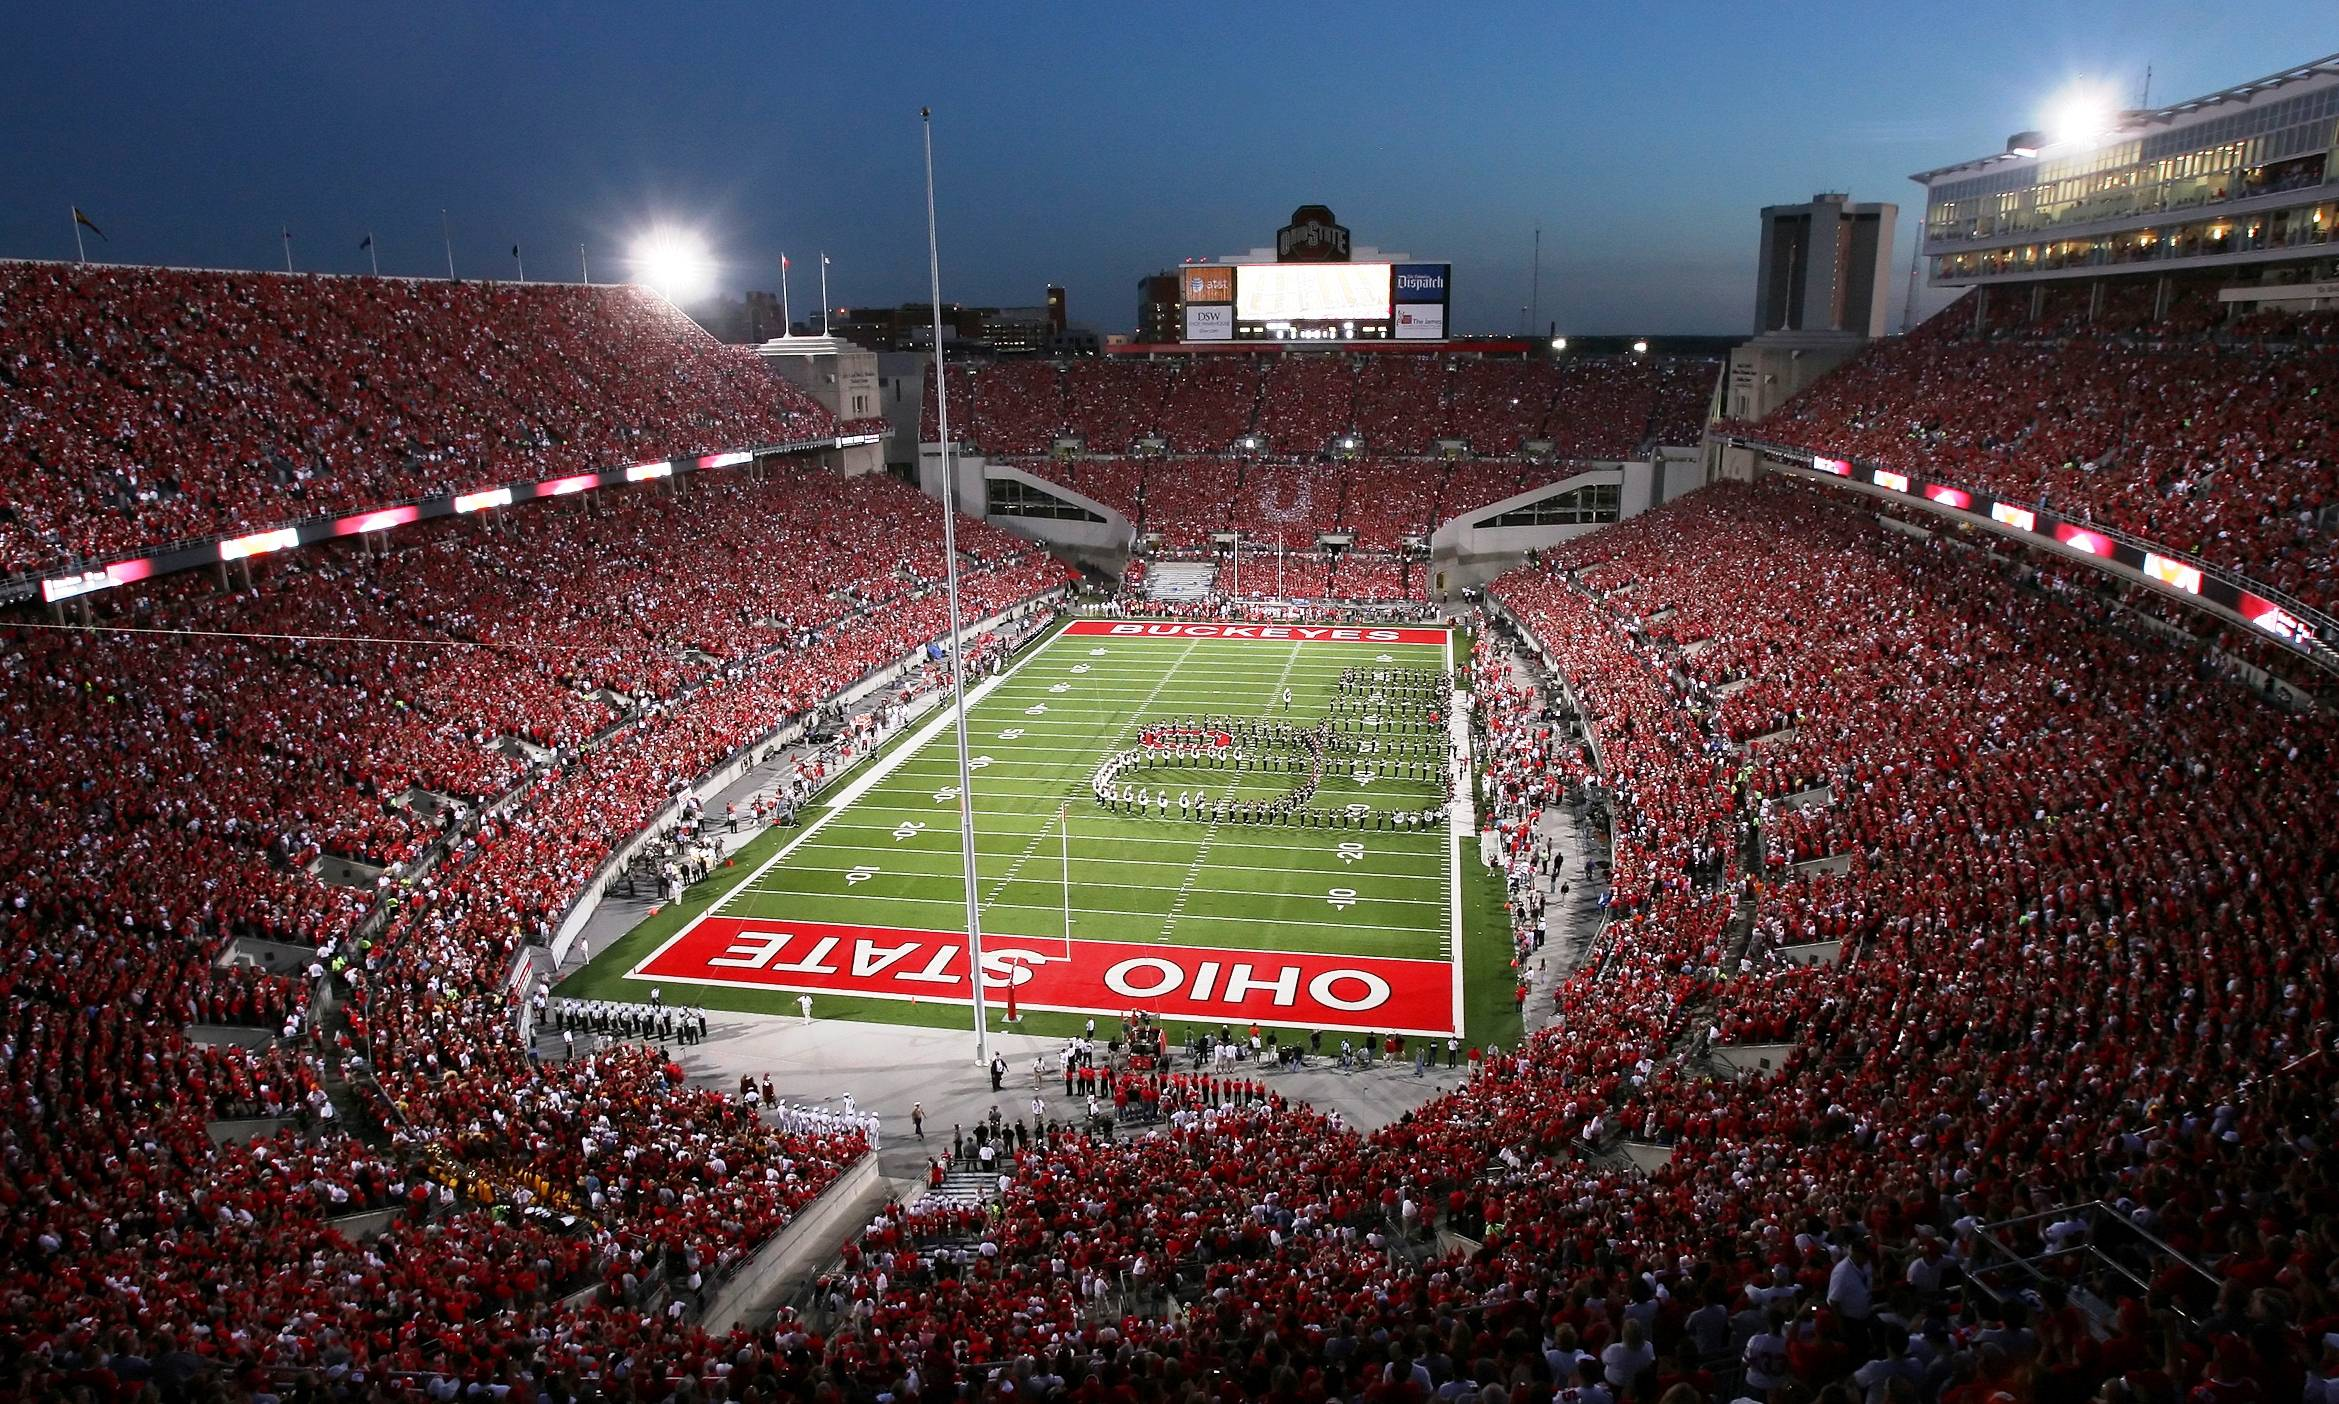 OHIO STATE BUCKEYES college football 23 wallpaper background 2339x1404